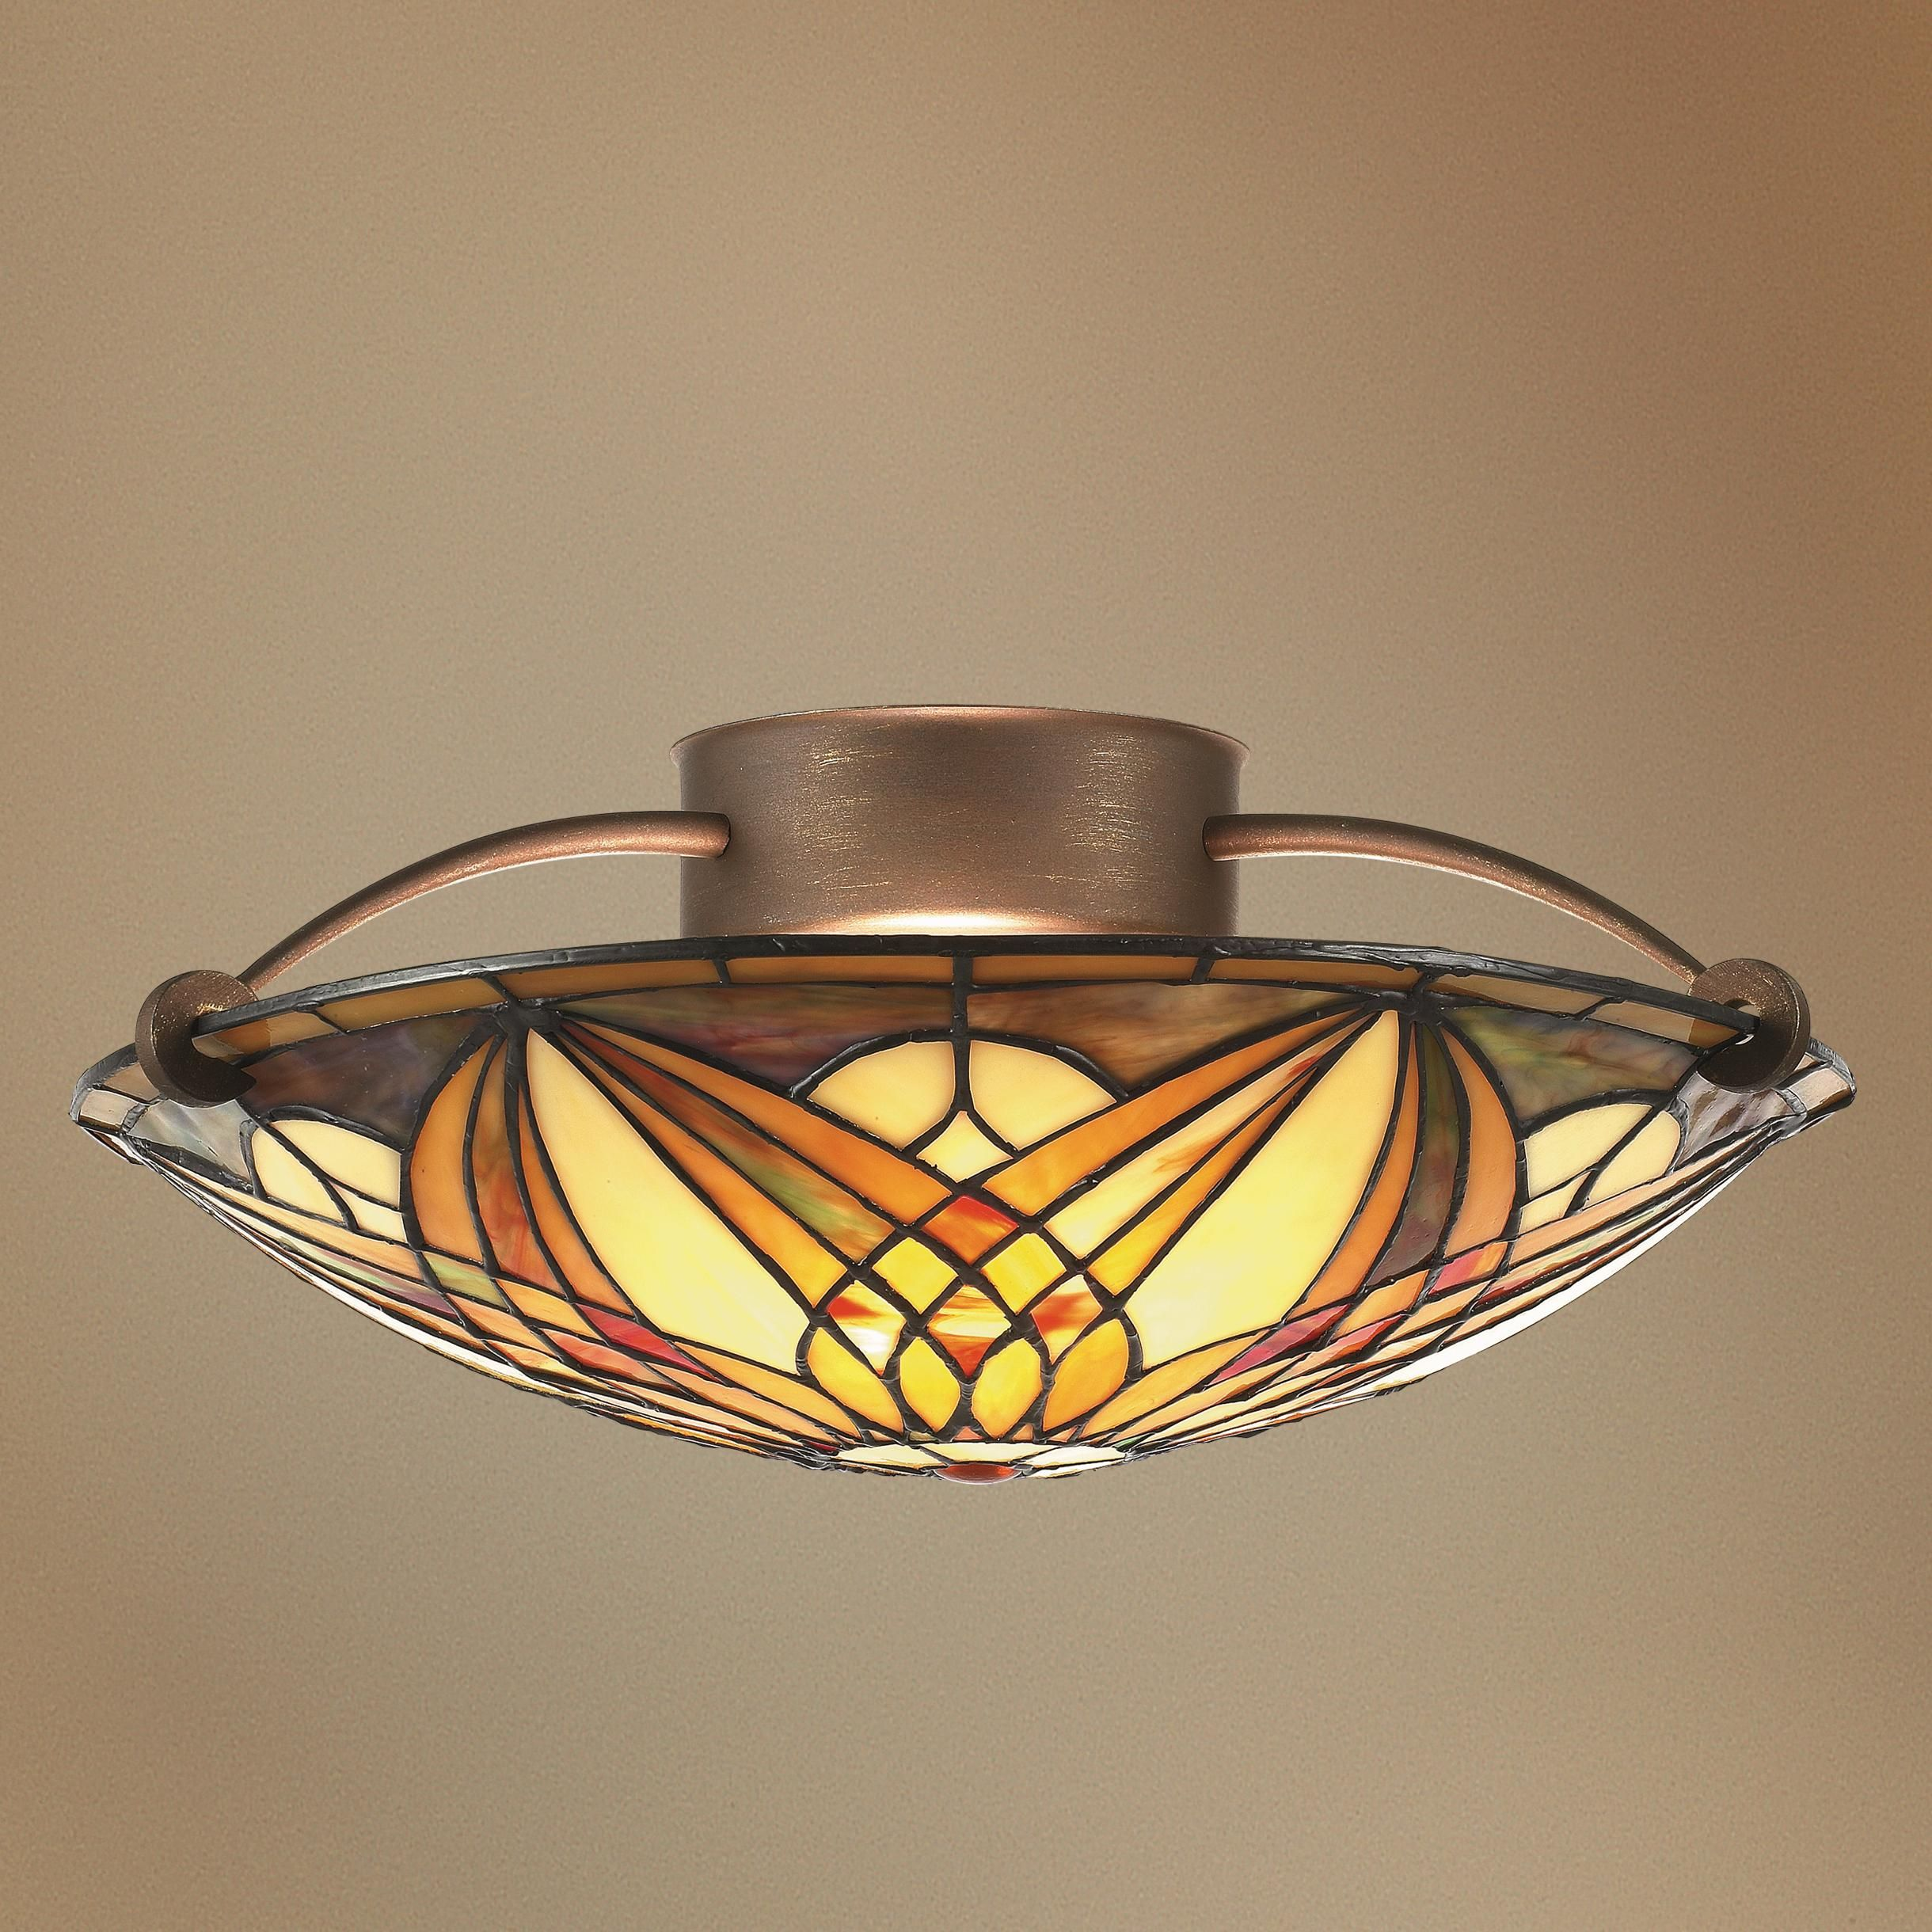 Lamps Plus Tiffany Style Lamps